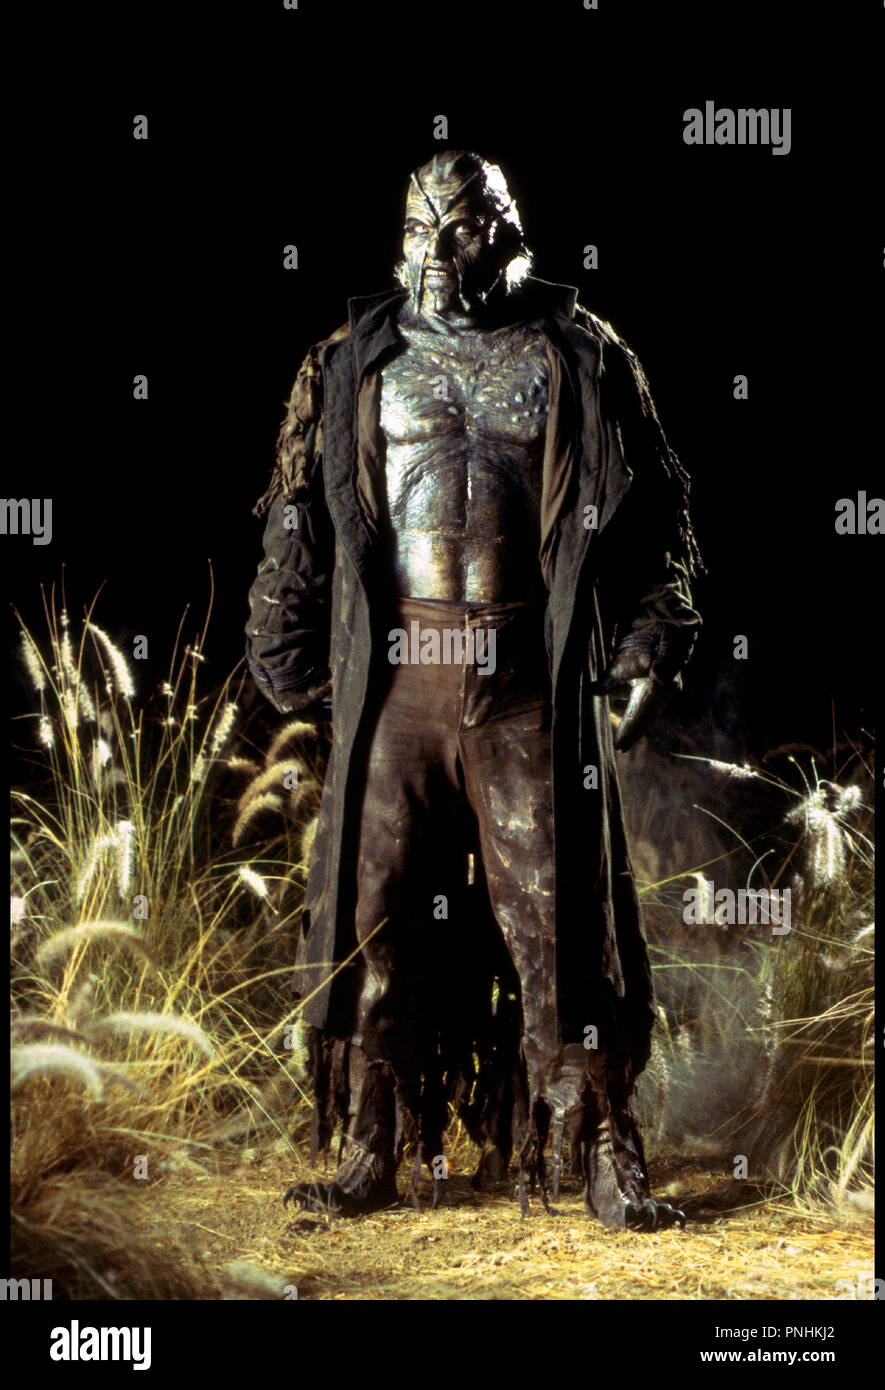 Jeepers Creepers 2 Stock Photos & Jeepers Creepers 2 Stock